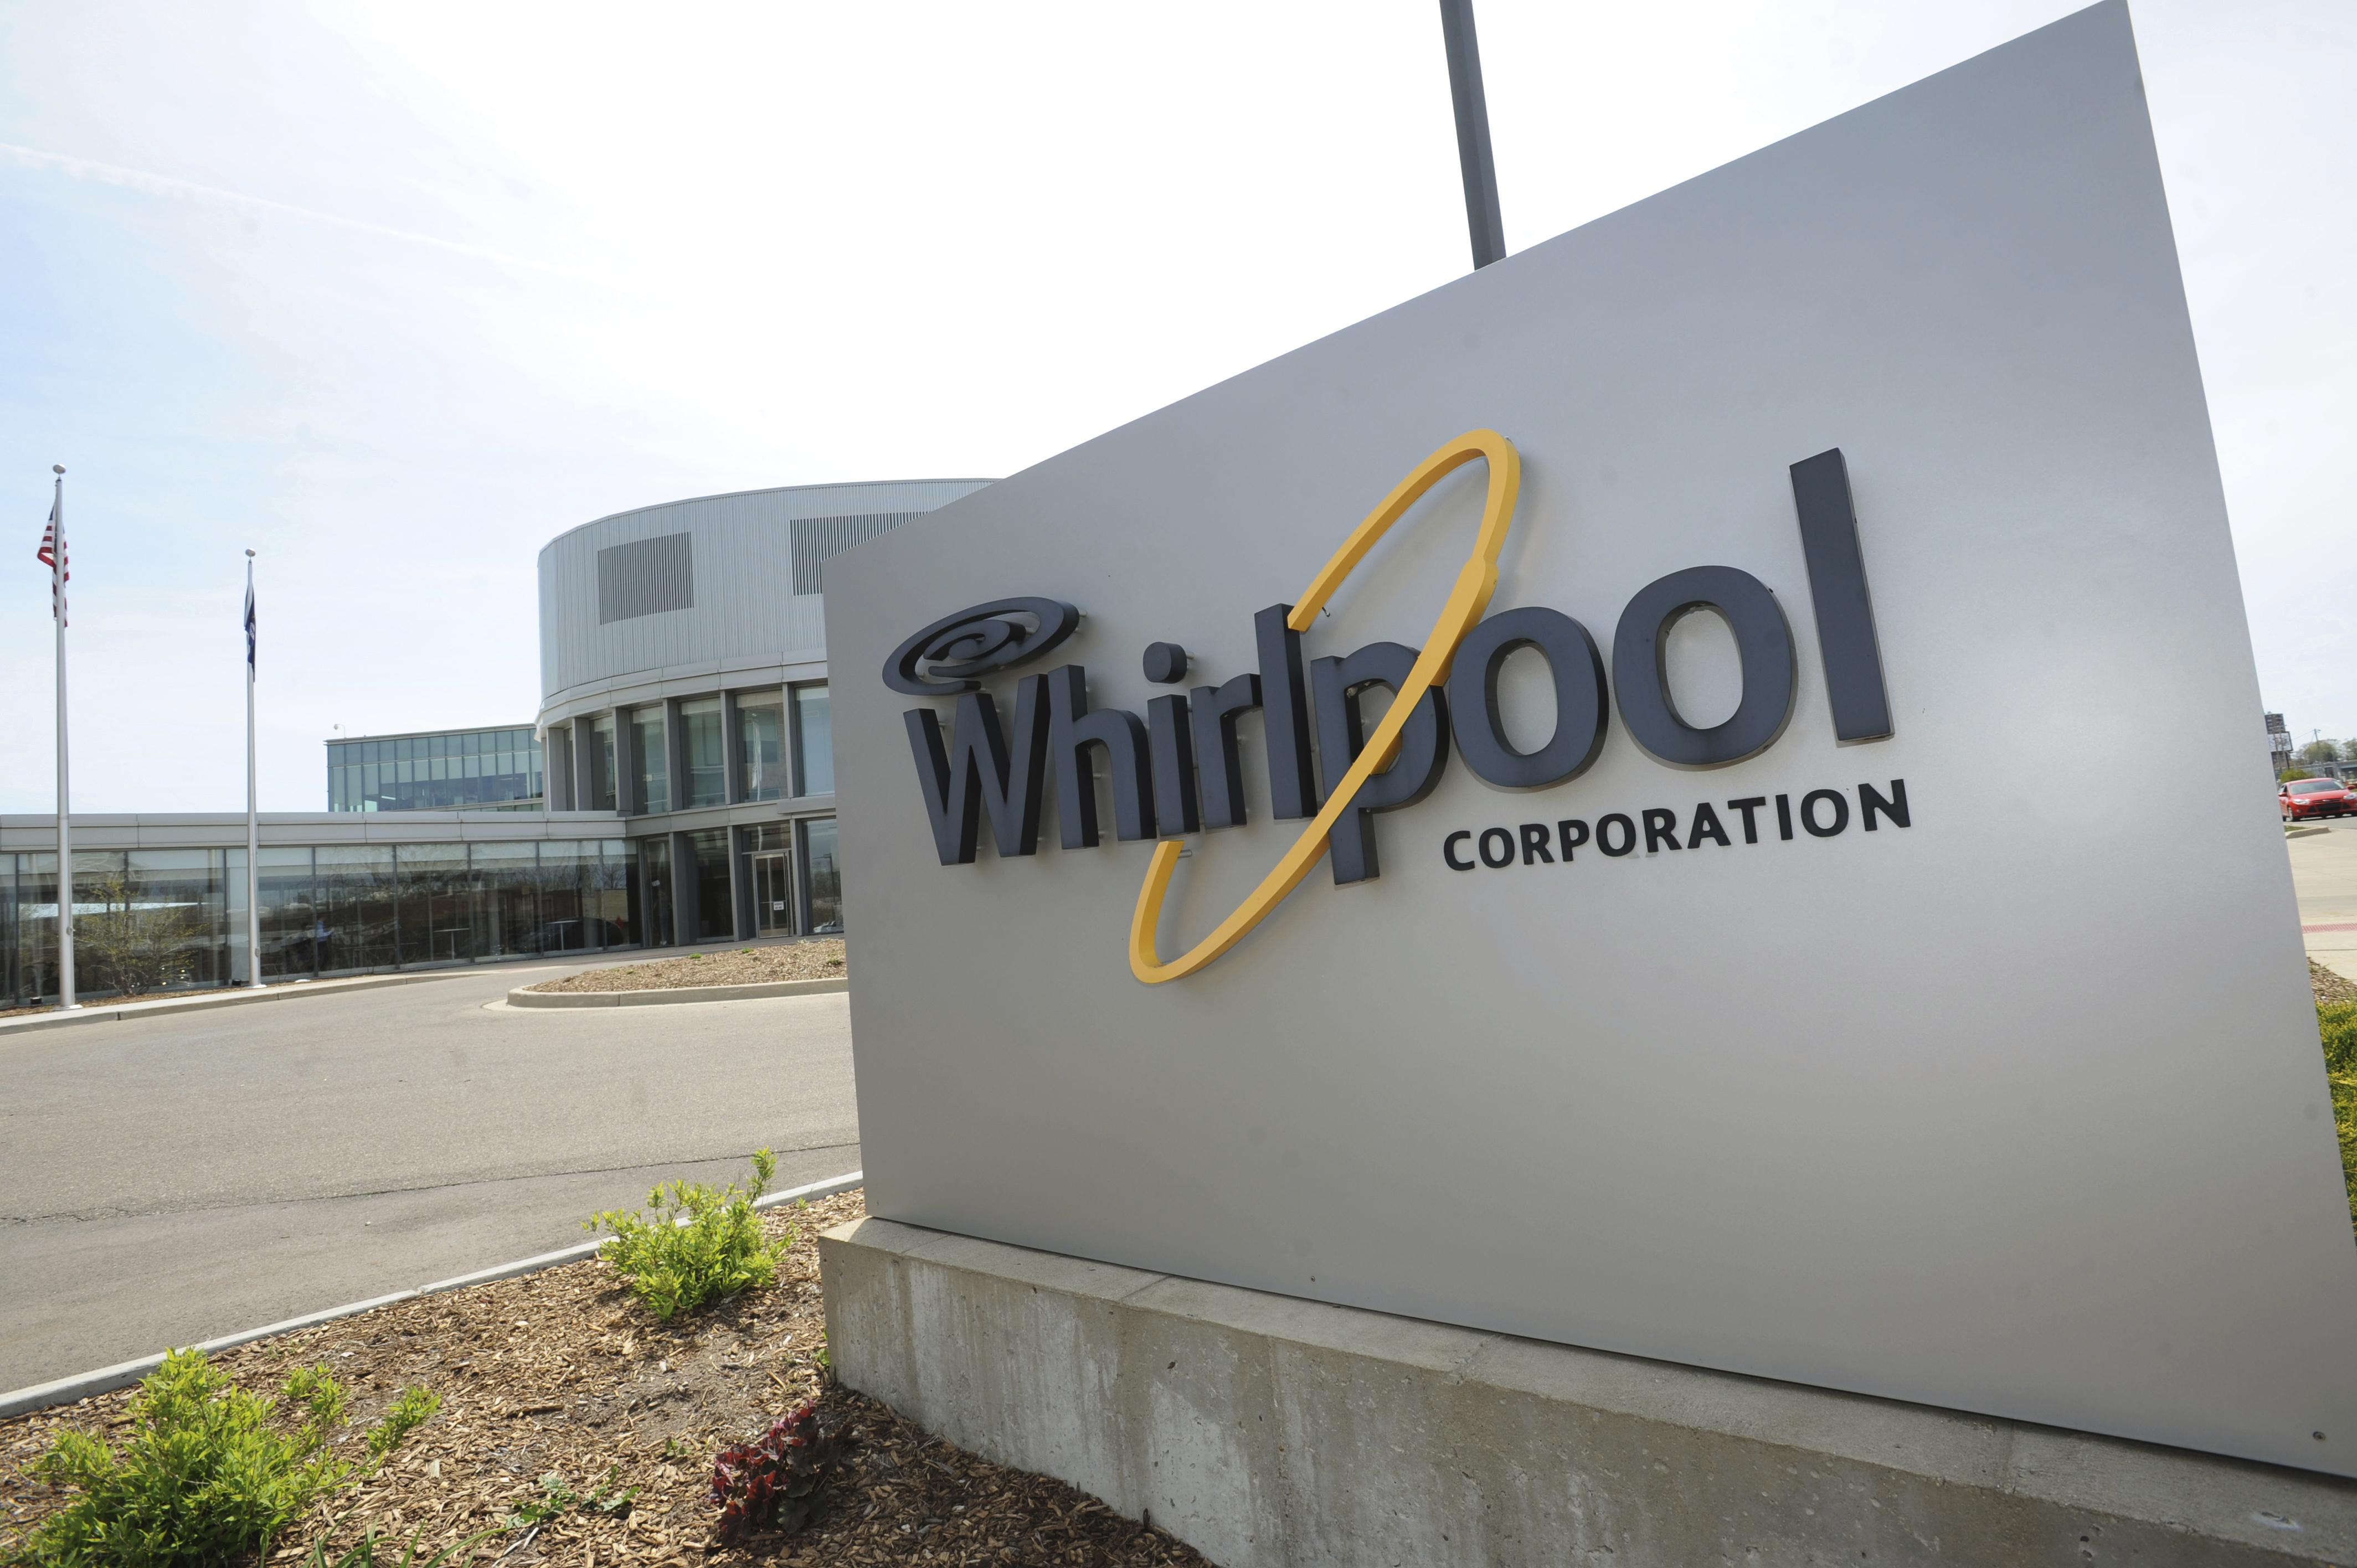 Motley Fool Whirlpool should appeal to value investors | The Spokesman-Review & Motley Fool: Whirlpool should appeal to value investors | The ... 25forcollege.com